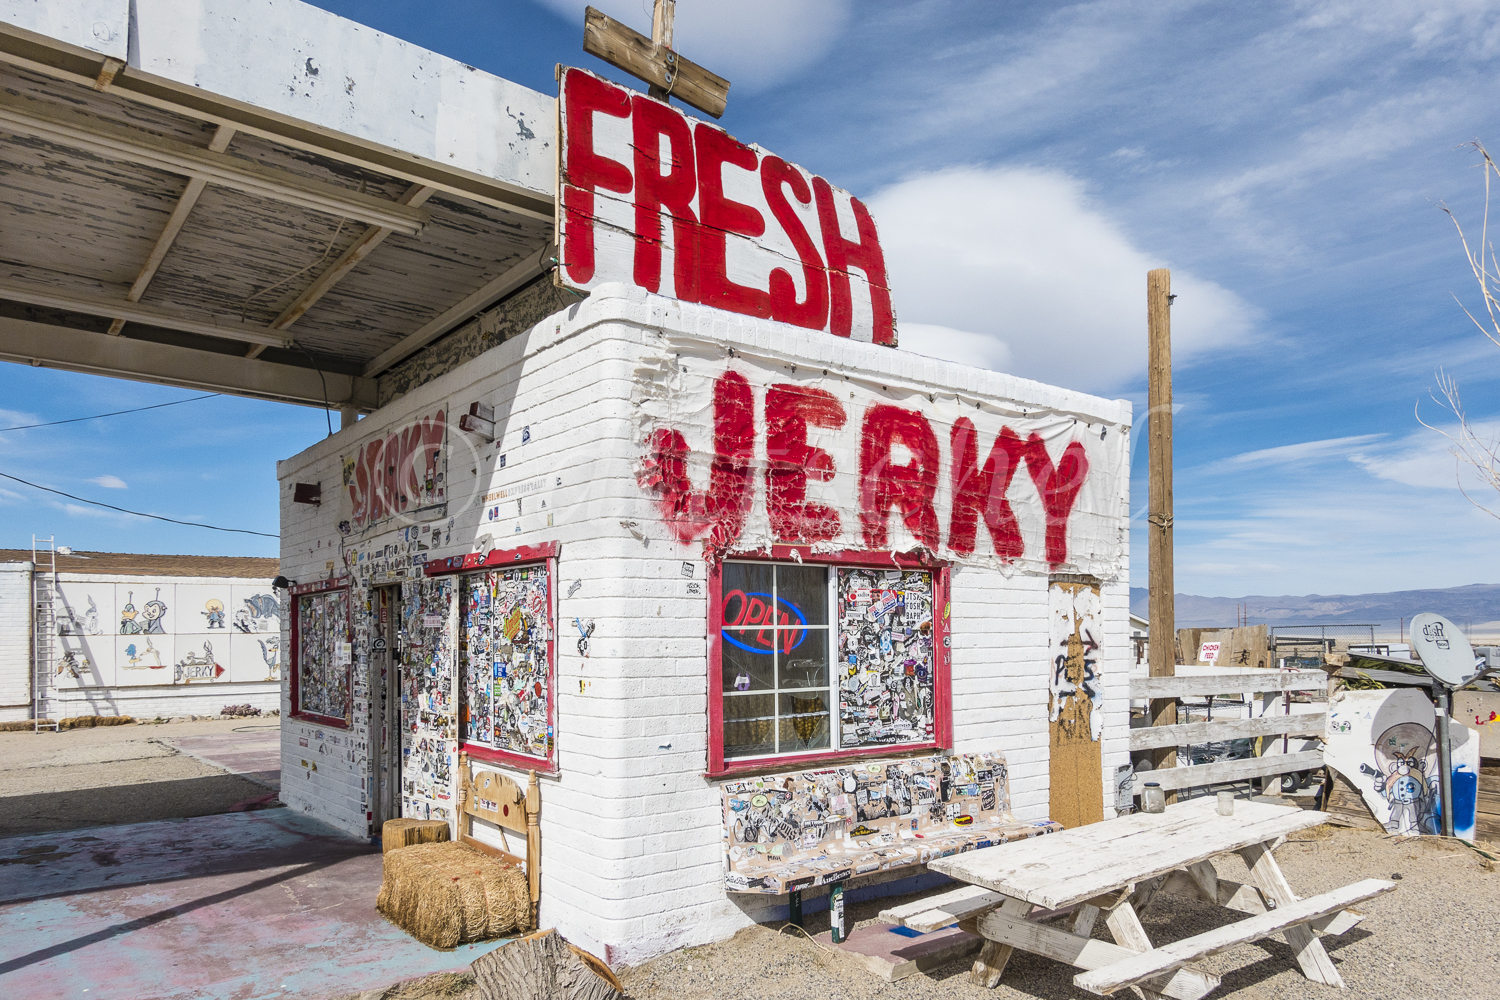 A small older white brick building along California highway 395 in the Eastern Sierras advertises the jerky it sells in huge red letters painted on the side of the building and on a sign atop the building.